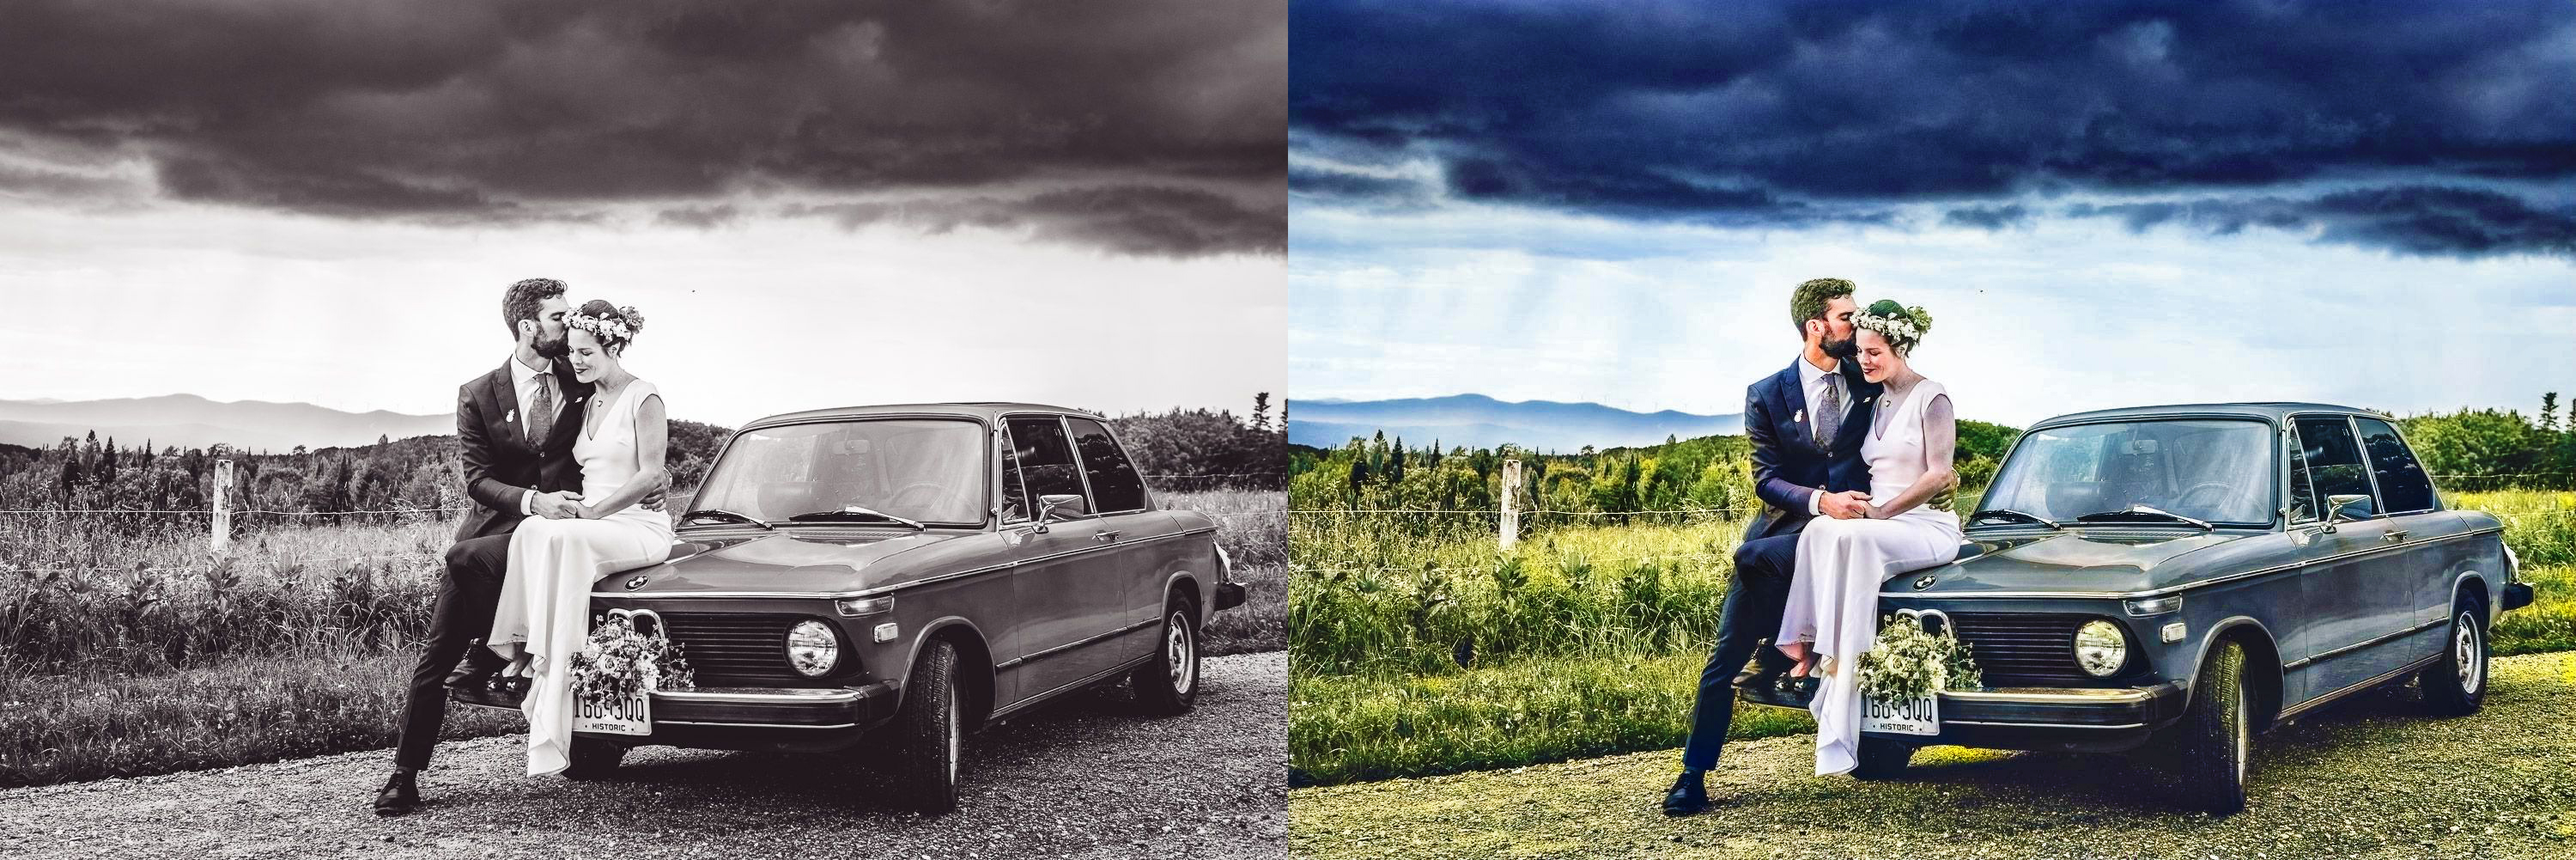 Realistically Colorize Your Black and White Photos